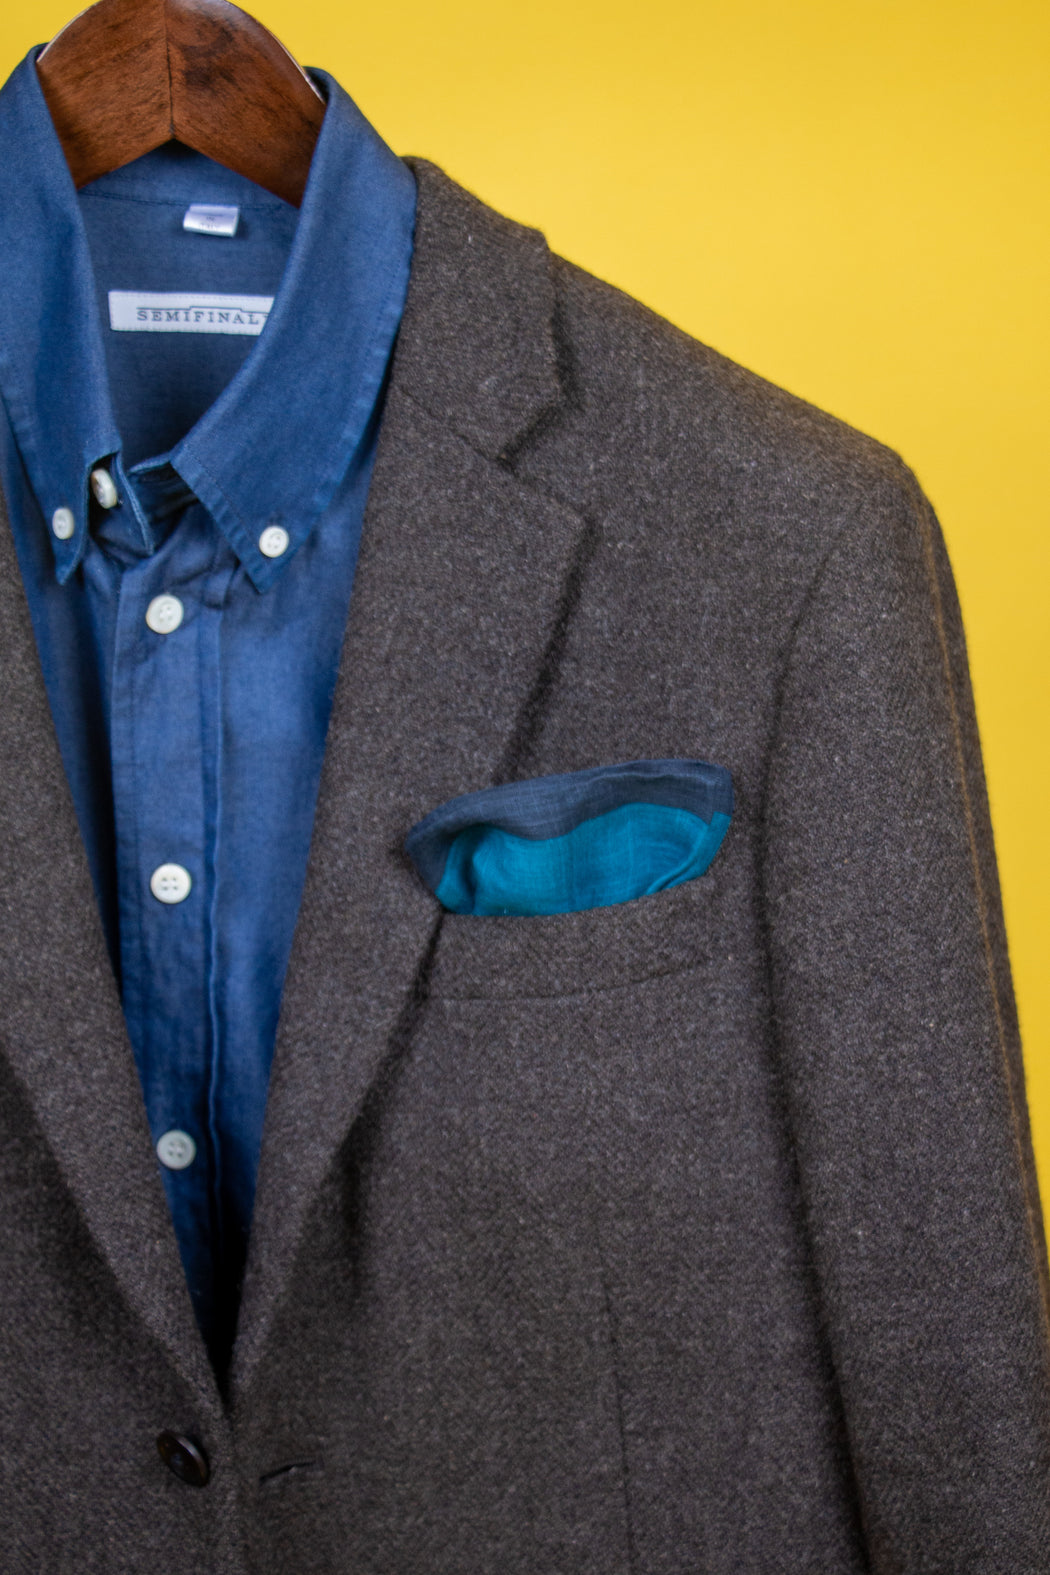 Blue cotton and linen square inside jacket pocket